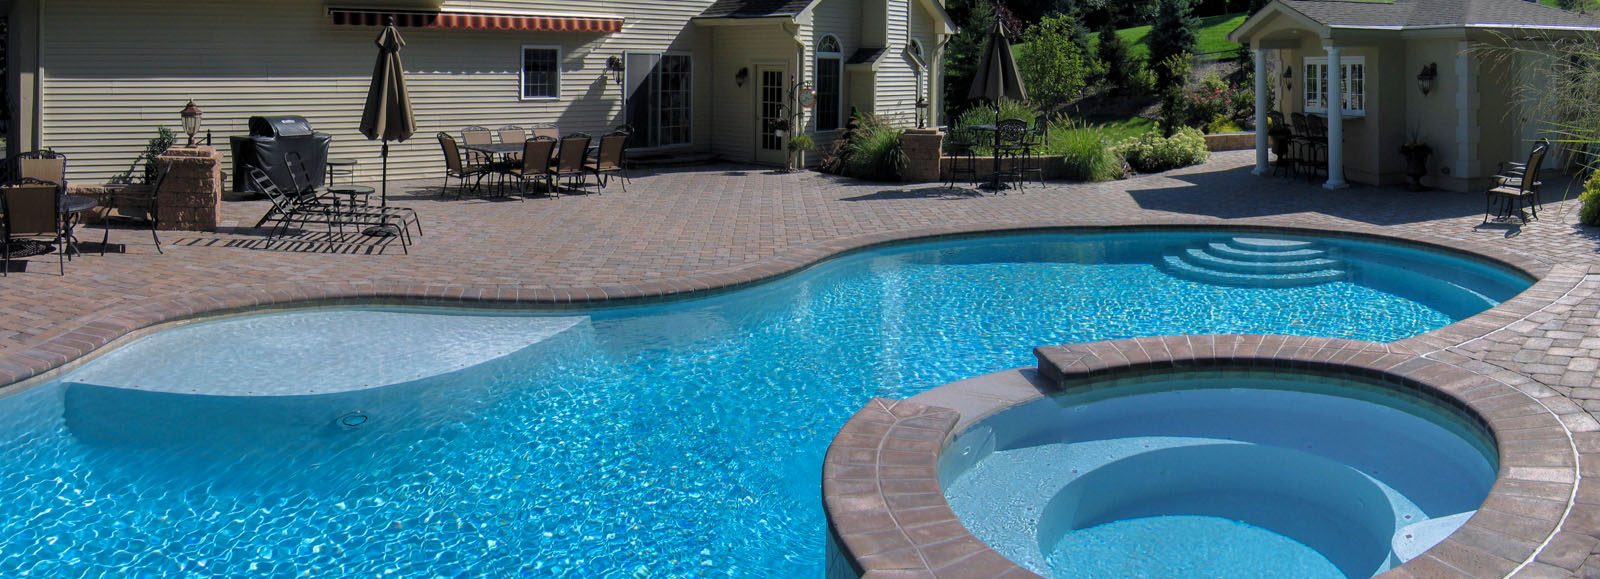 Swimming pool design portfolio serving north jersey for Pool and spa show usa